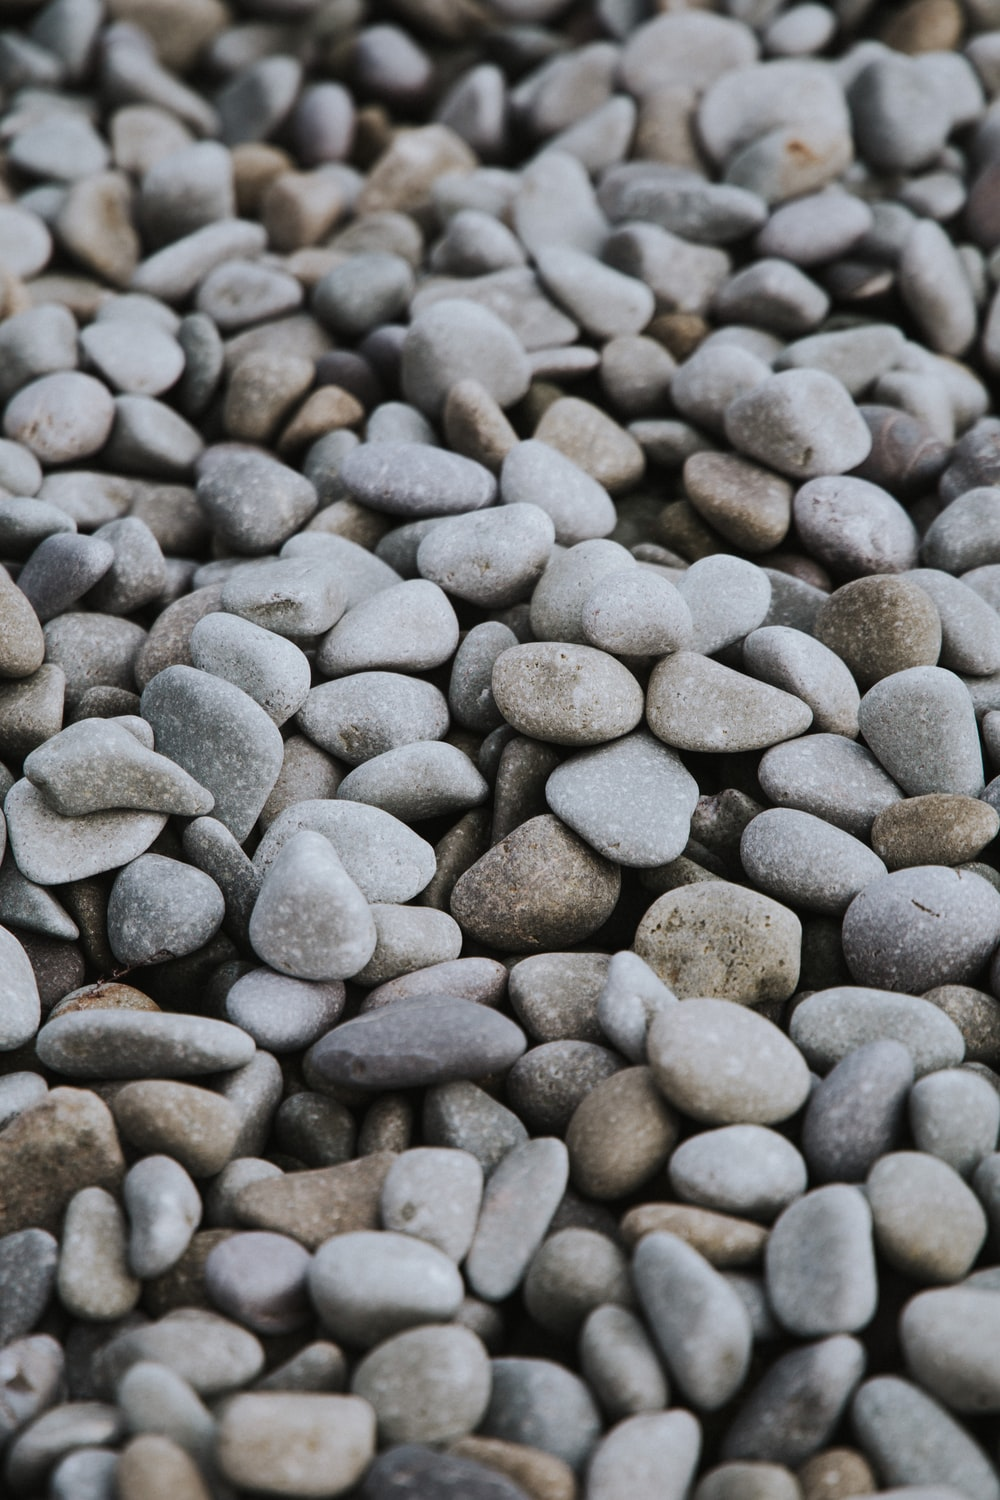 gray and black pebbles during daytime